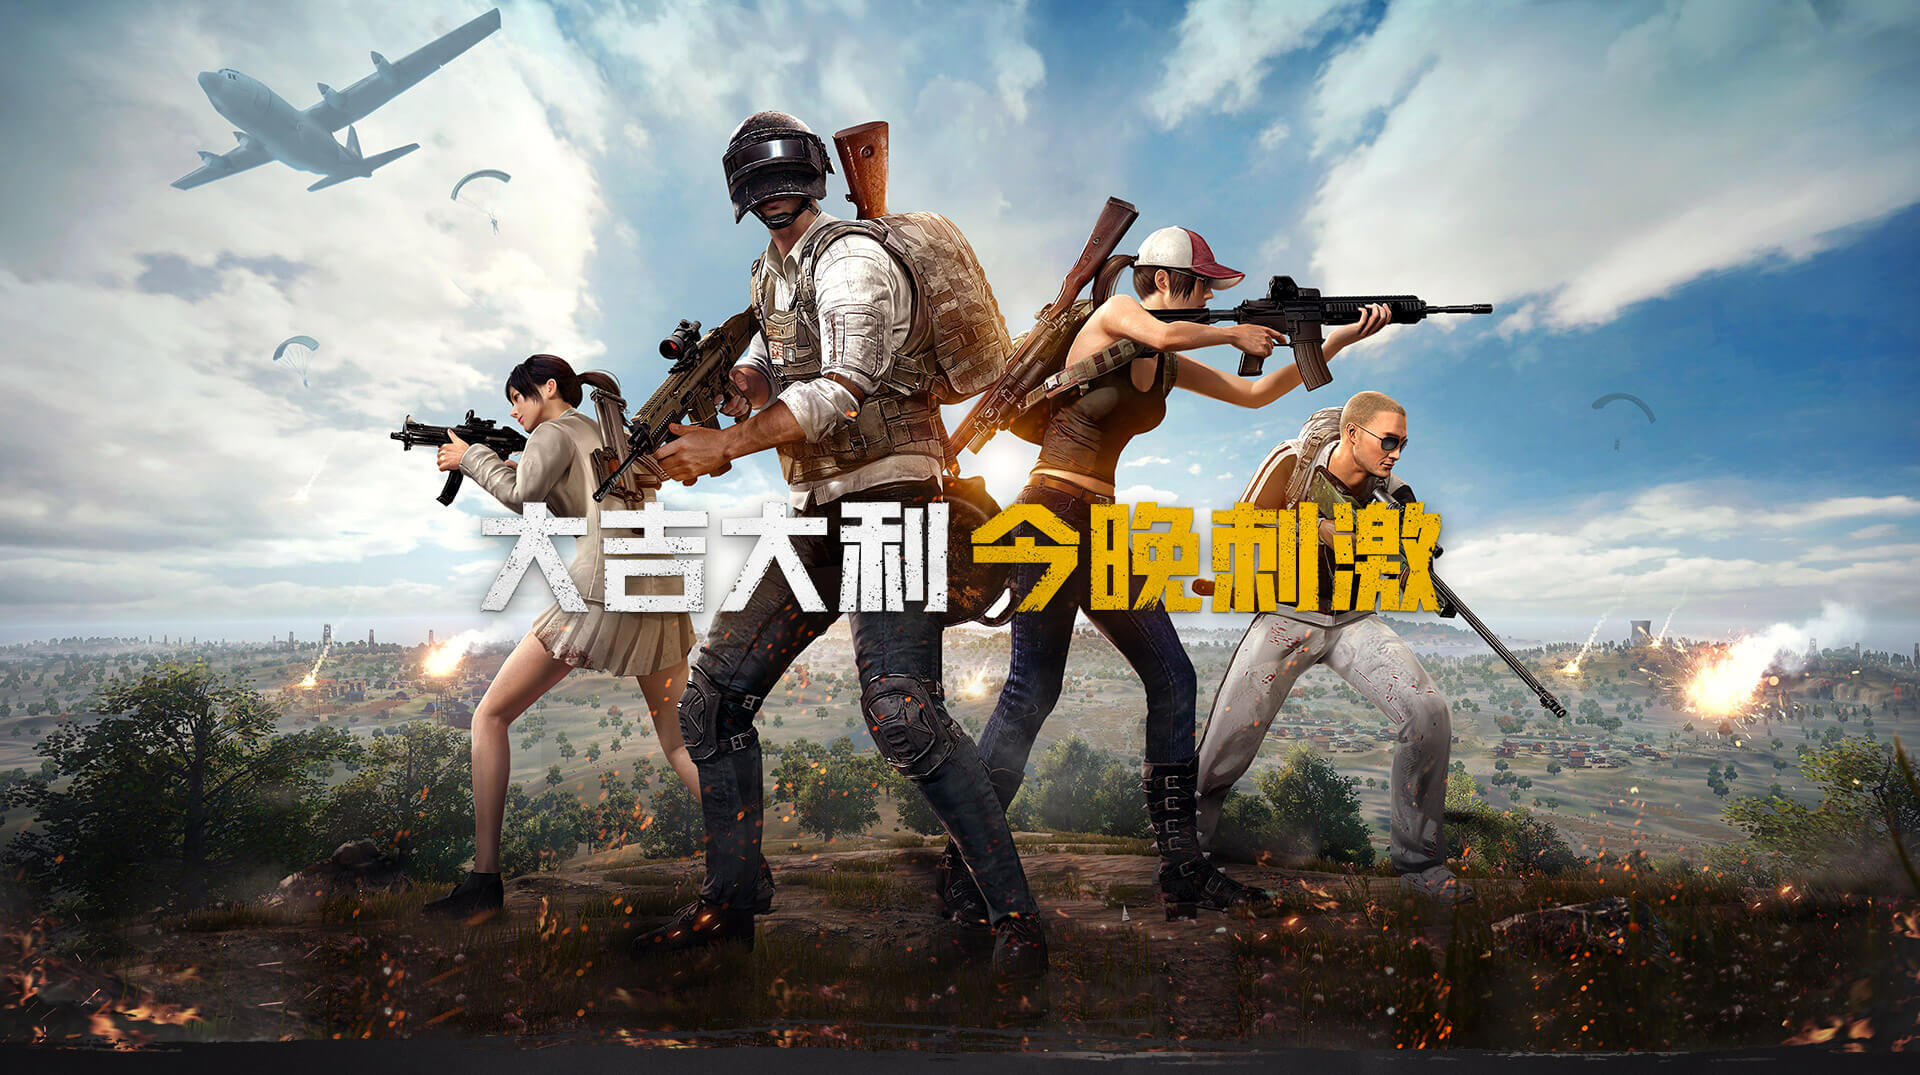 Download Playerunknown's Battlegrounds PUBG APK